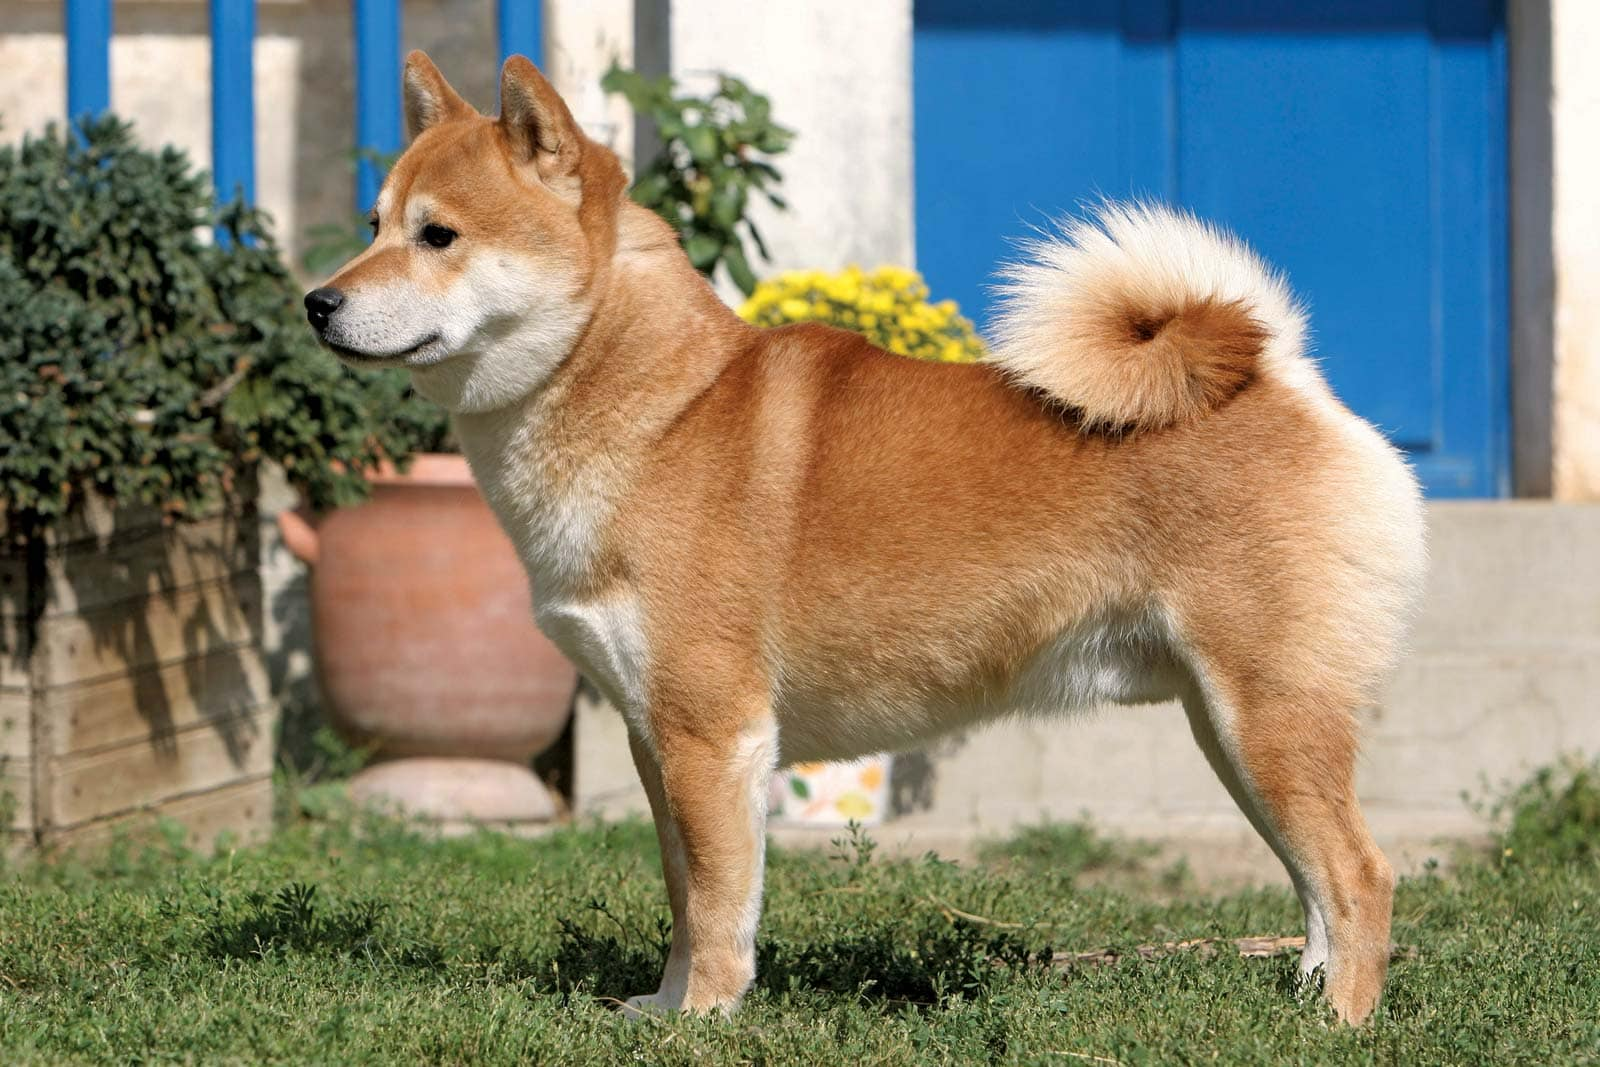 What Is The Cutest Thing You've Ever Seen a Dog do - Shiba Inu